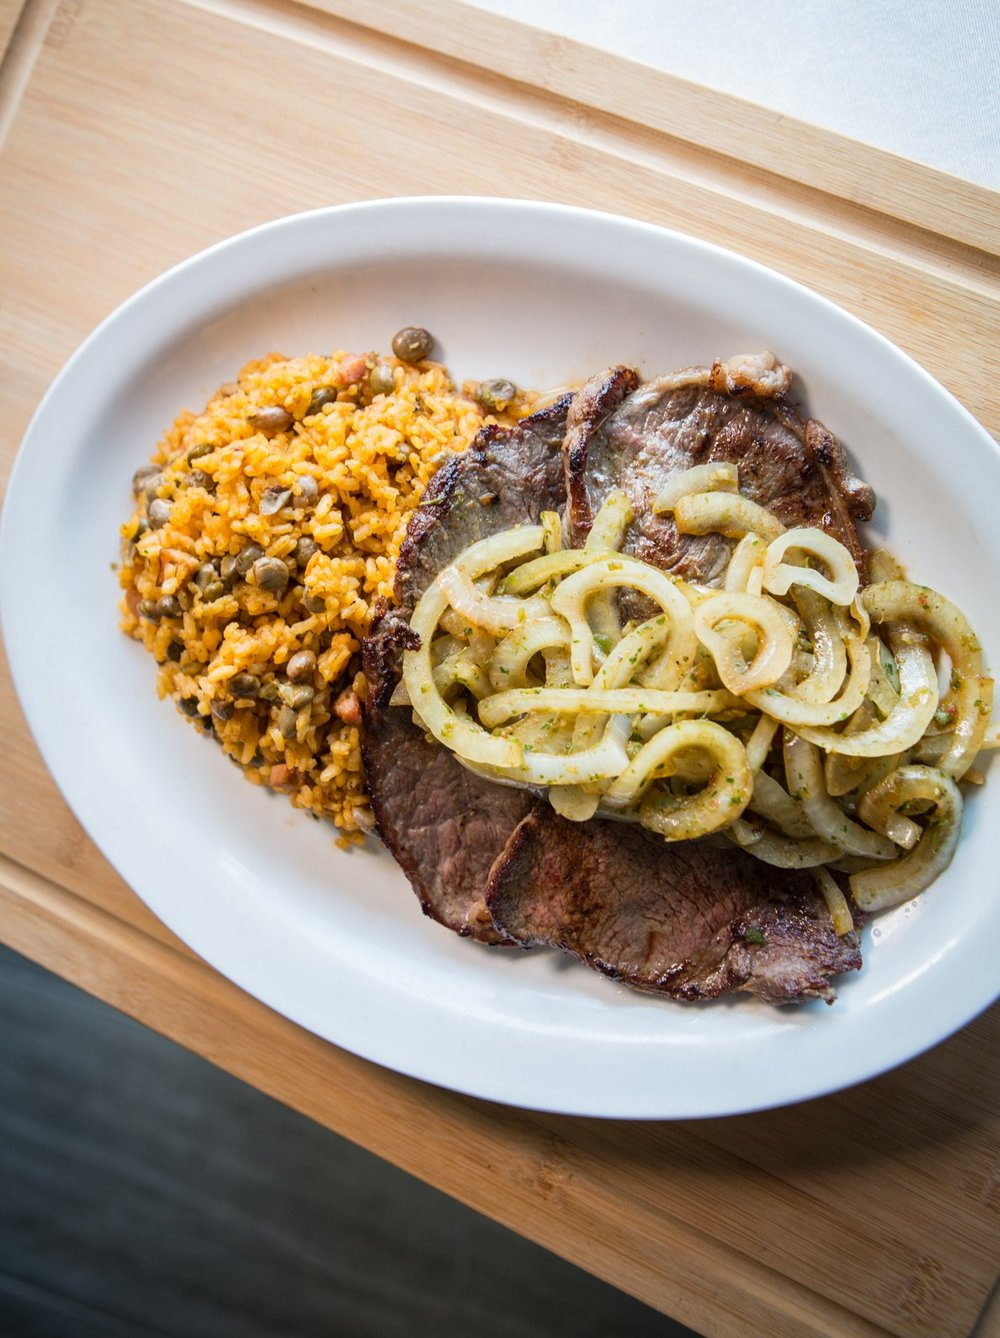 Bistec Encebollado (beefsteak with grilled onions) from WEPA!